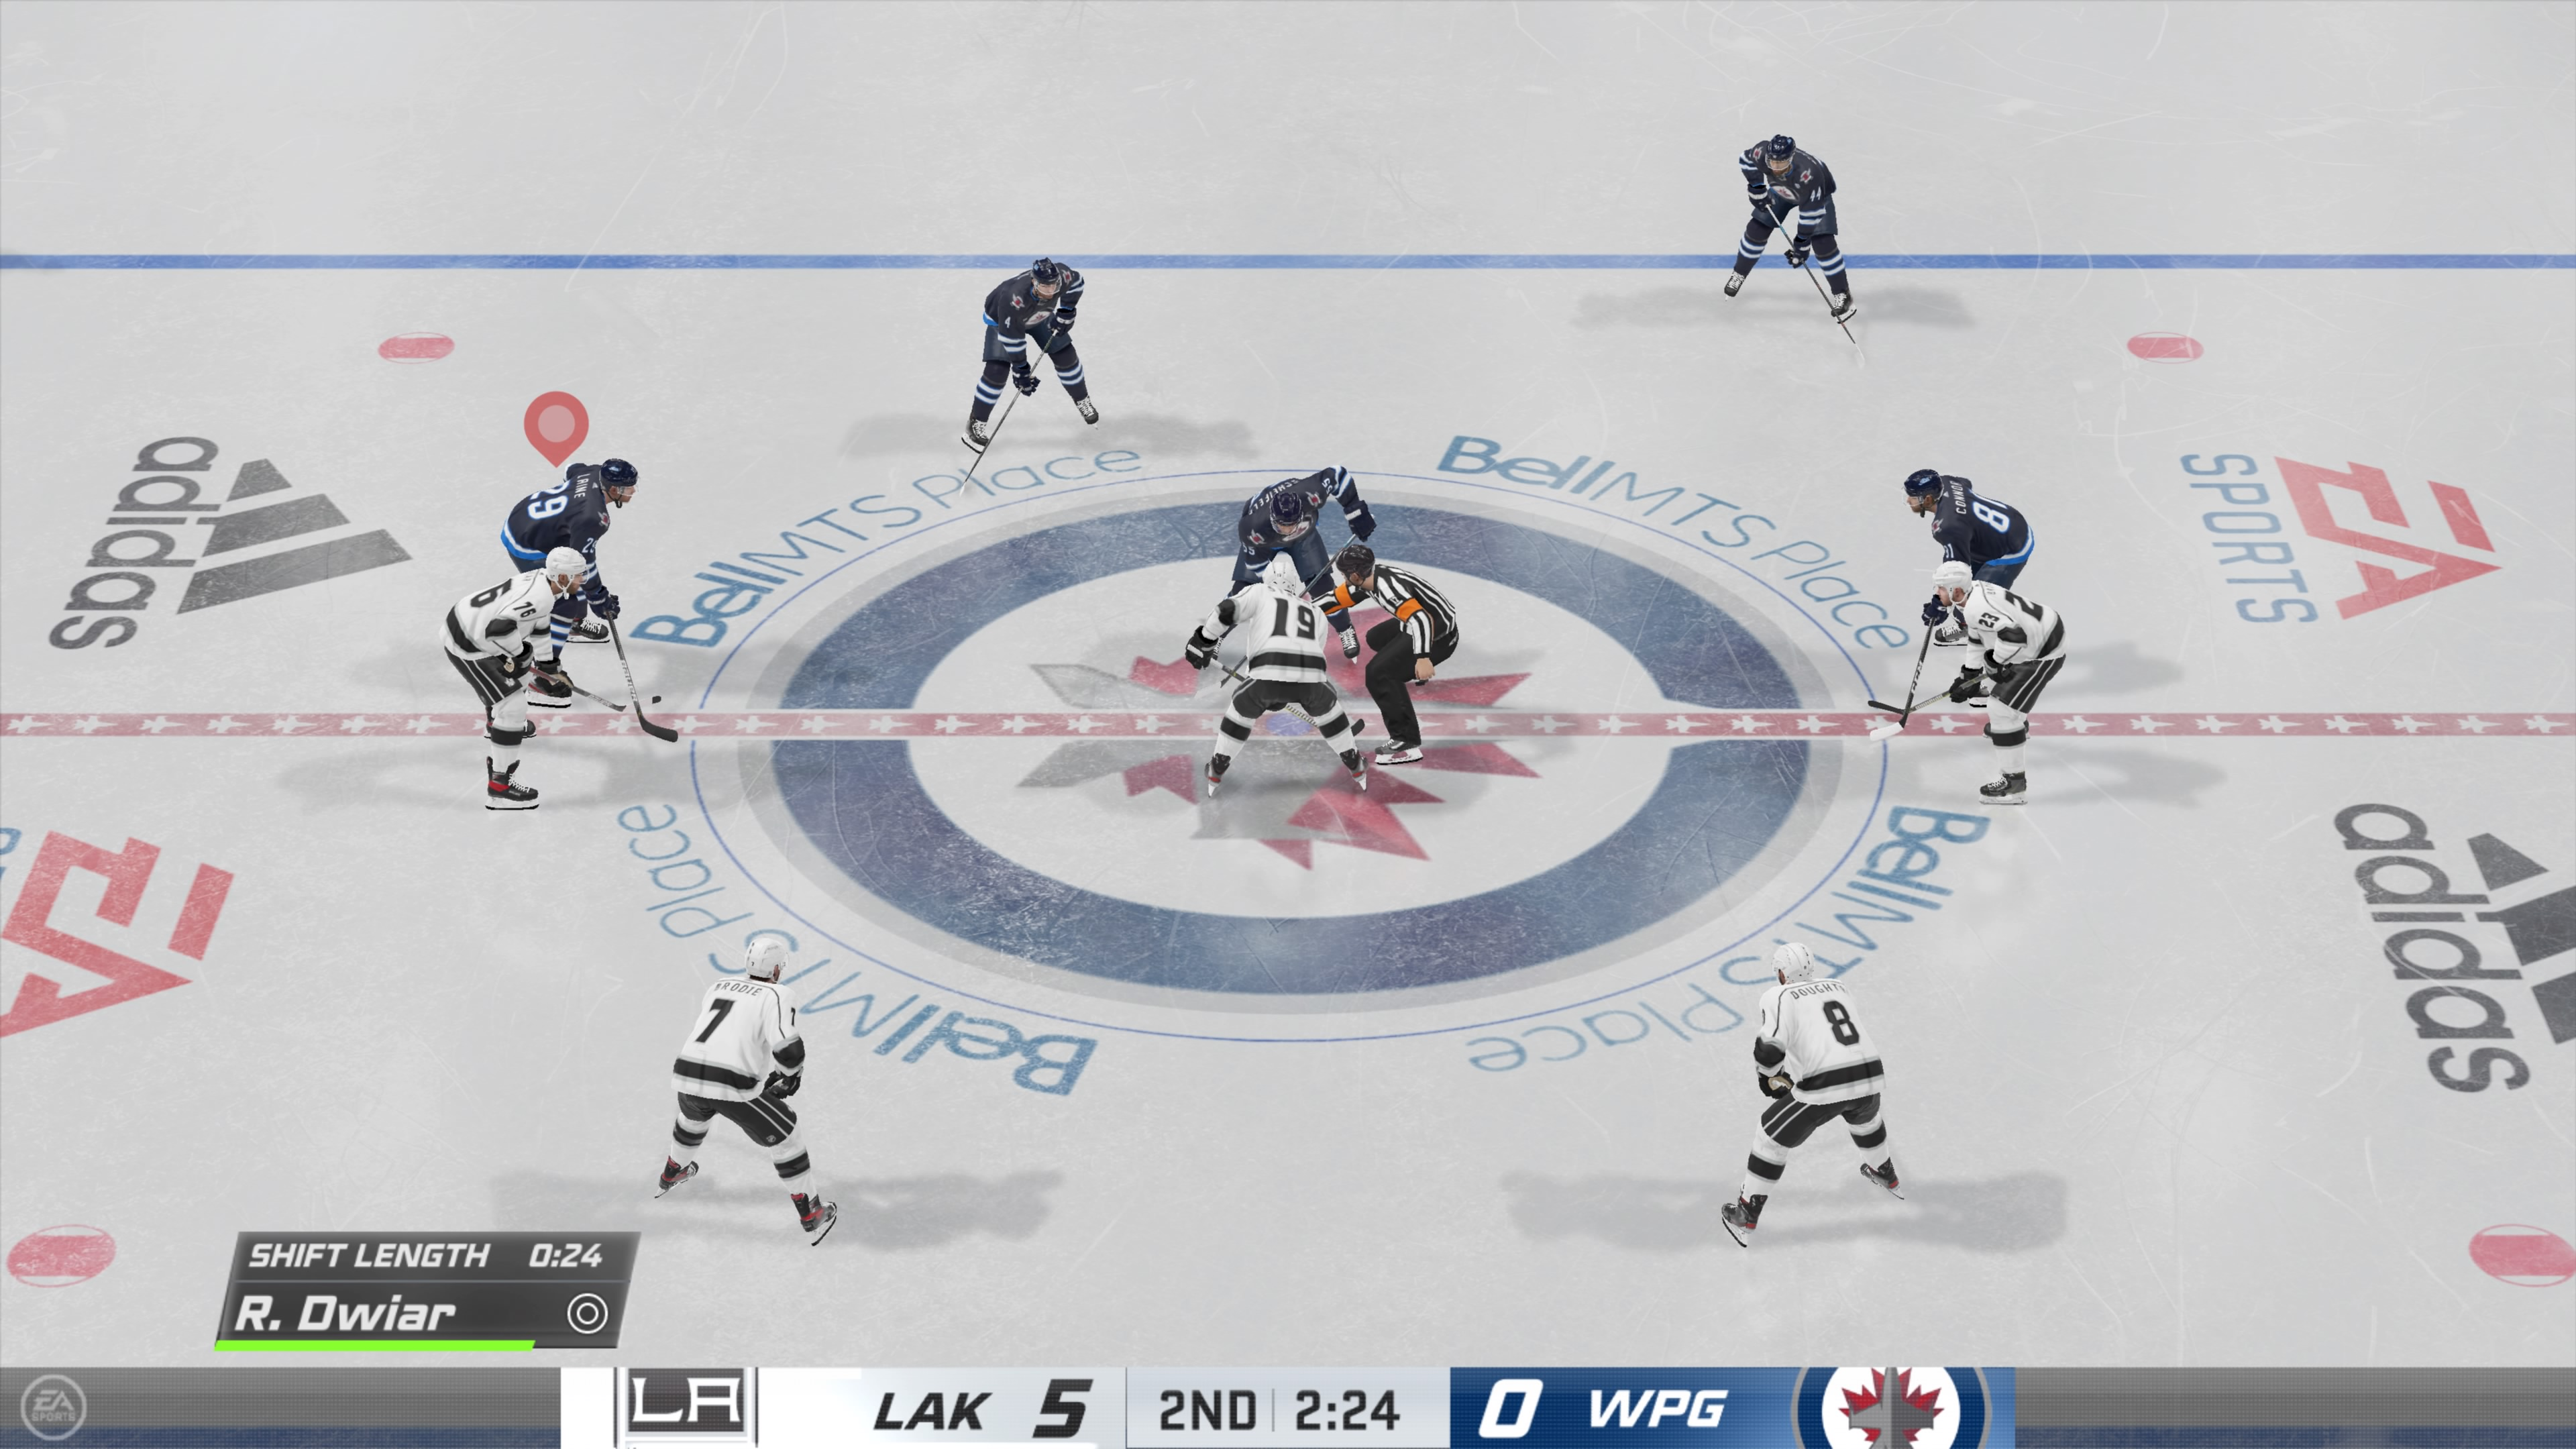 Nhl 21 Review Never A Clean Hit But A Solid And Enjoyable One Gamesradar